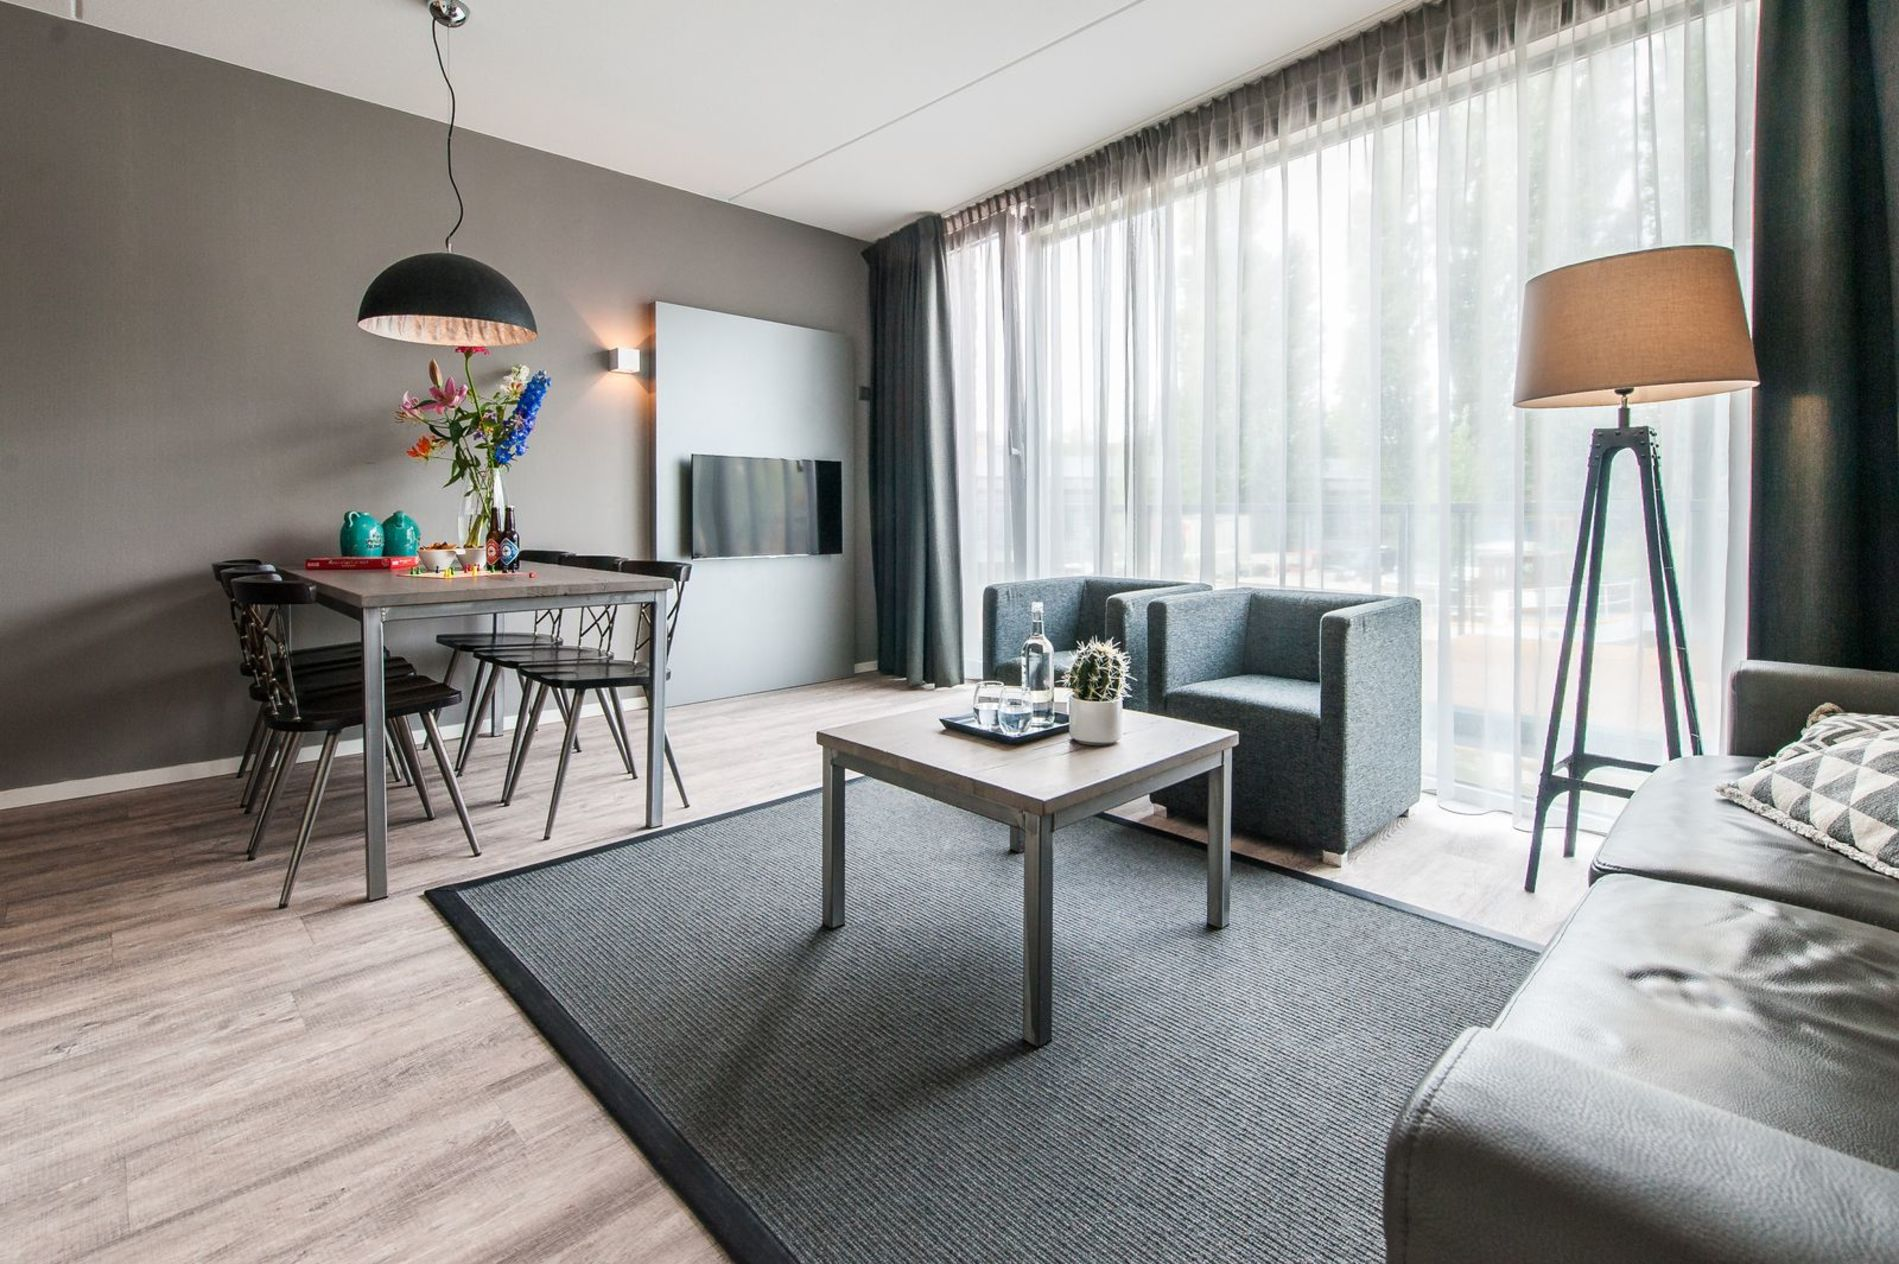 Serviced apartment in Amterdam that is great for families with children